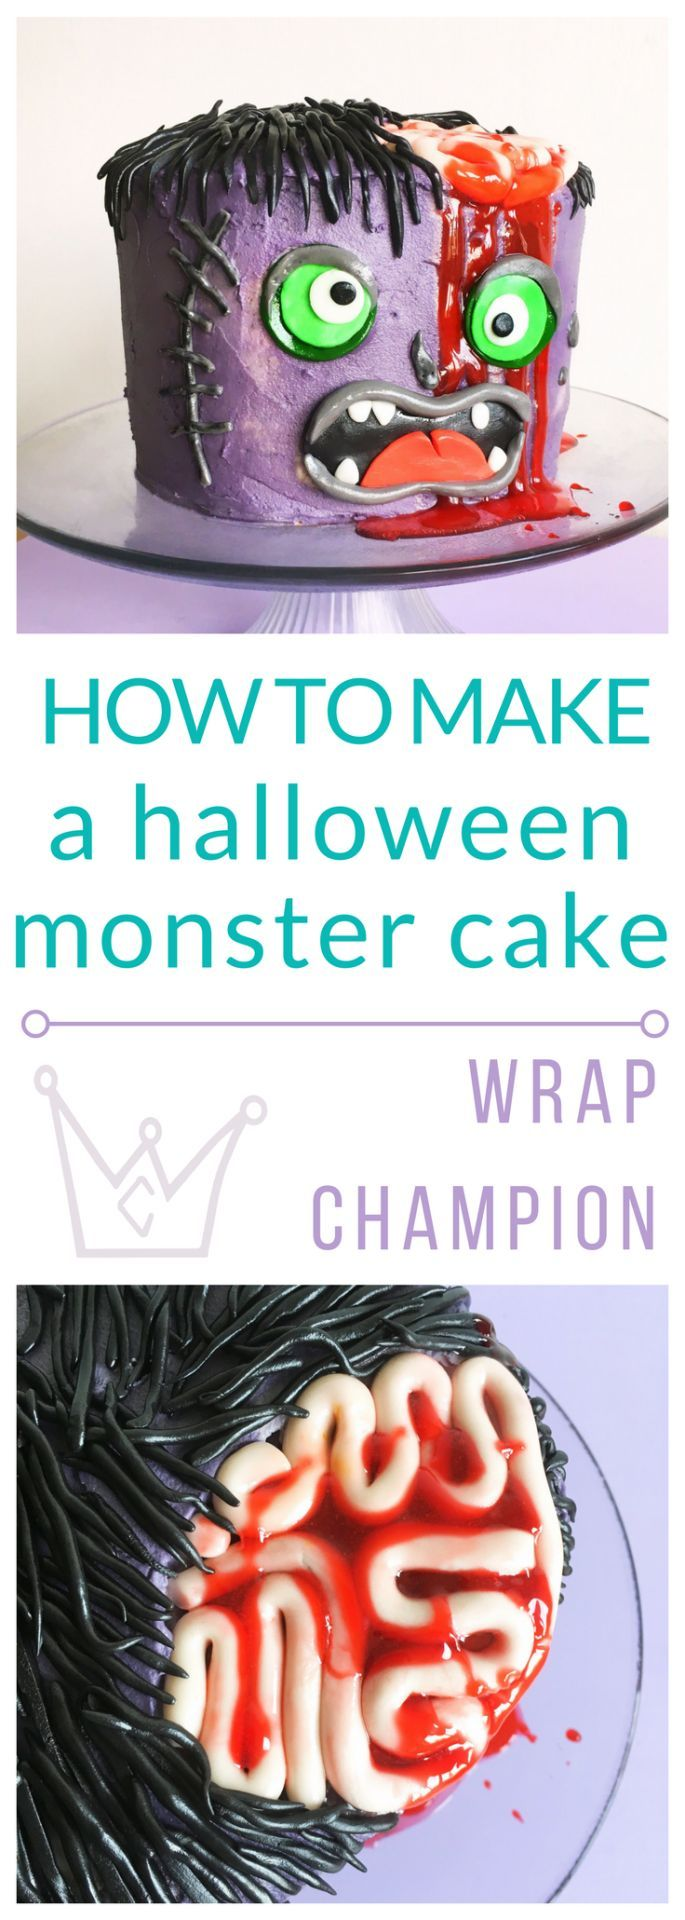 How To Make A Scary Halloween Monster Cake Tutorial With Step By Step Instructions And Edible Blood